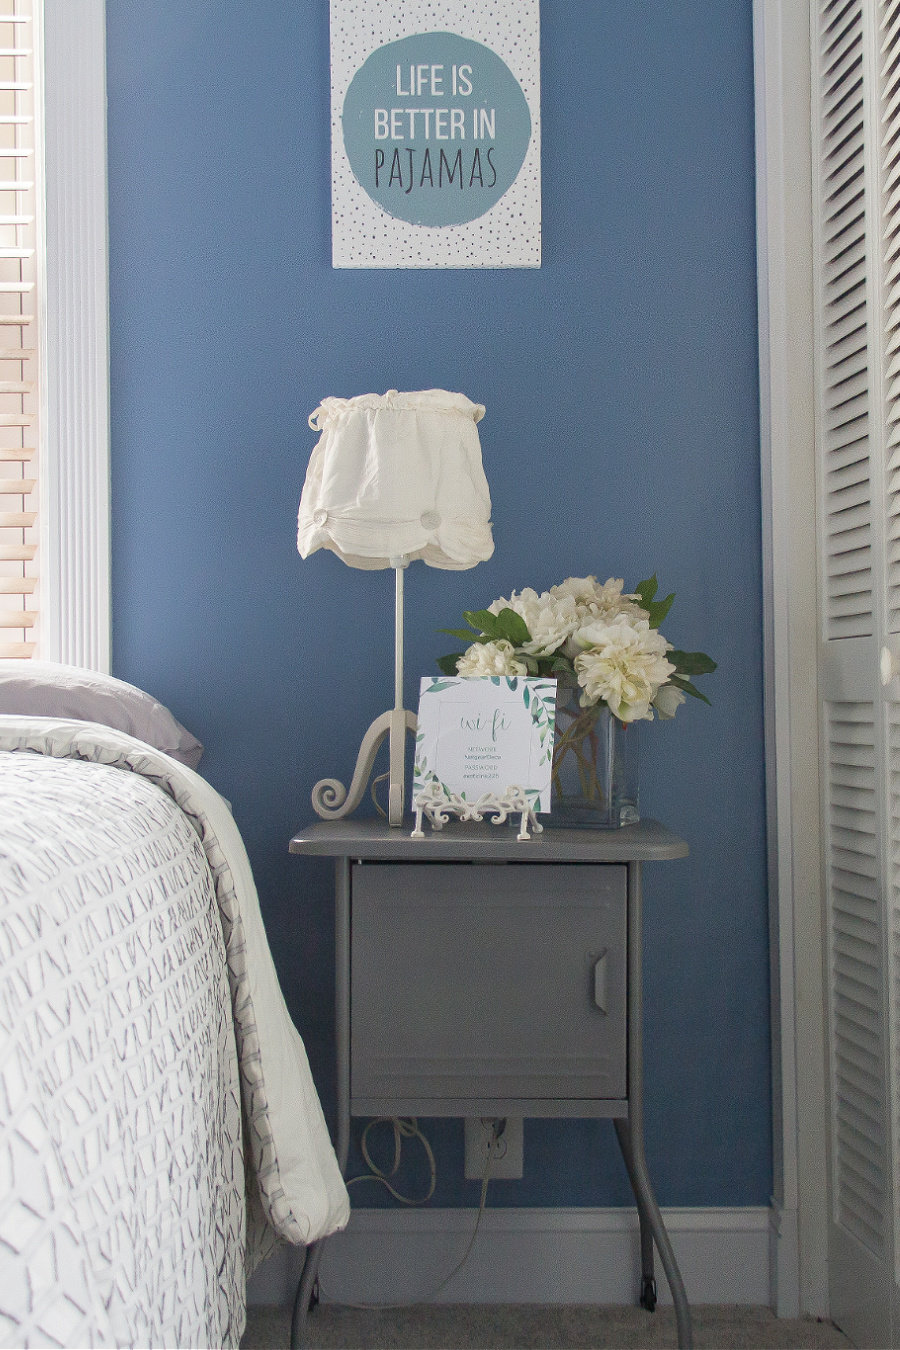 A grey metal bedside table with white flowers in a vase, a white bedside lamp, and a card with passwords for a guest bedroom.